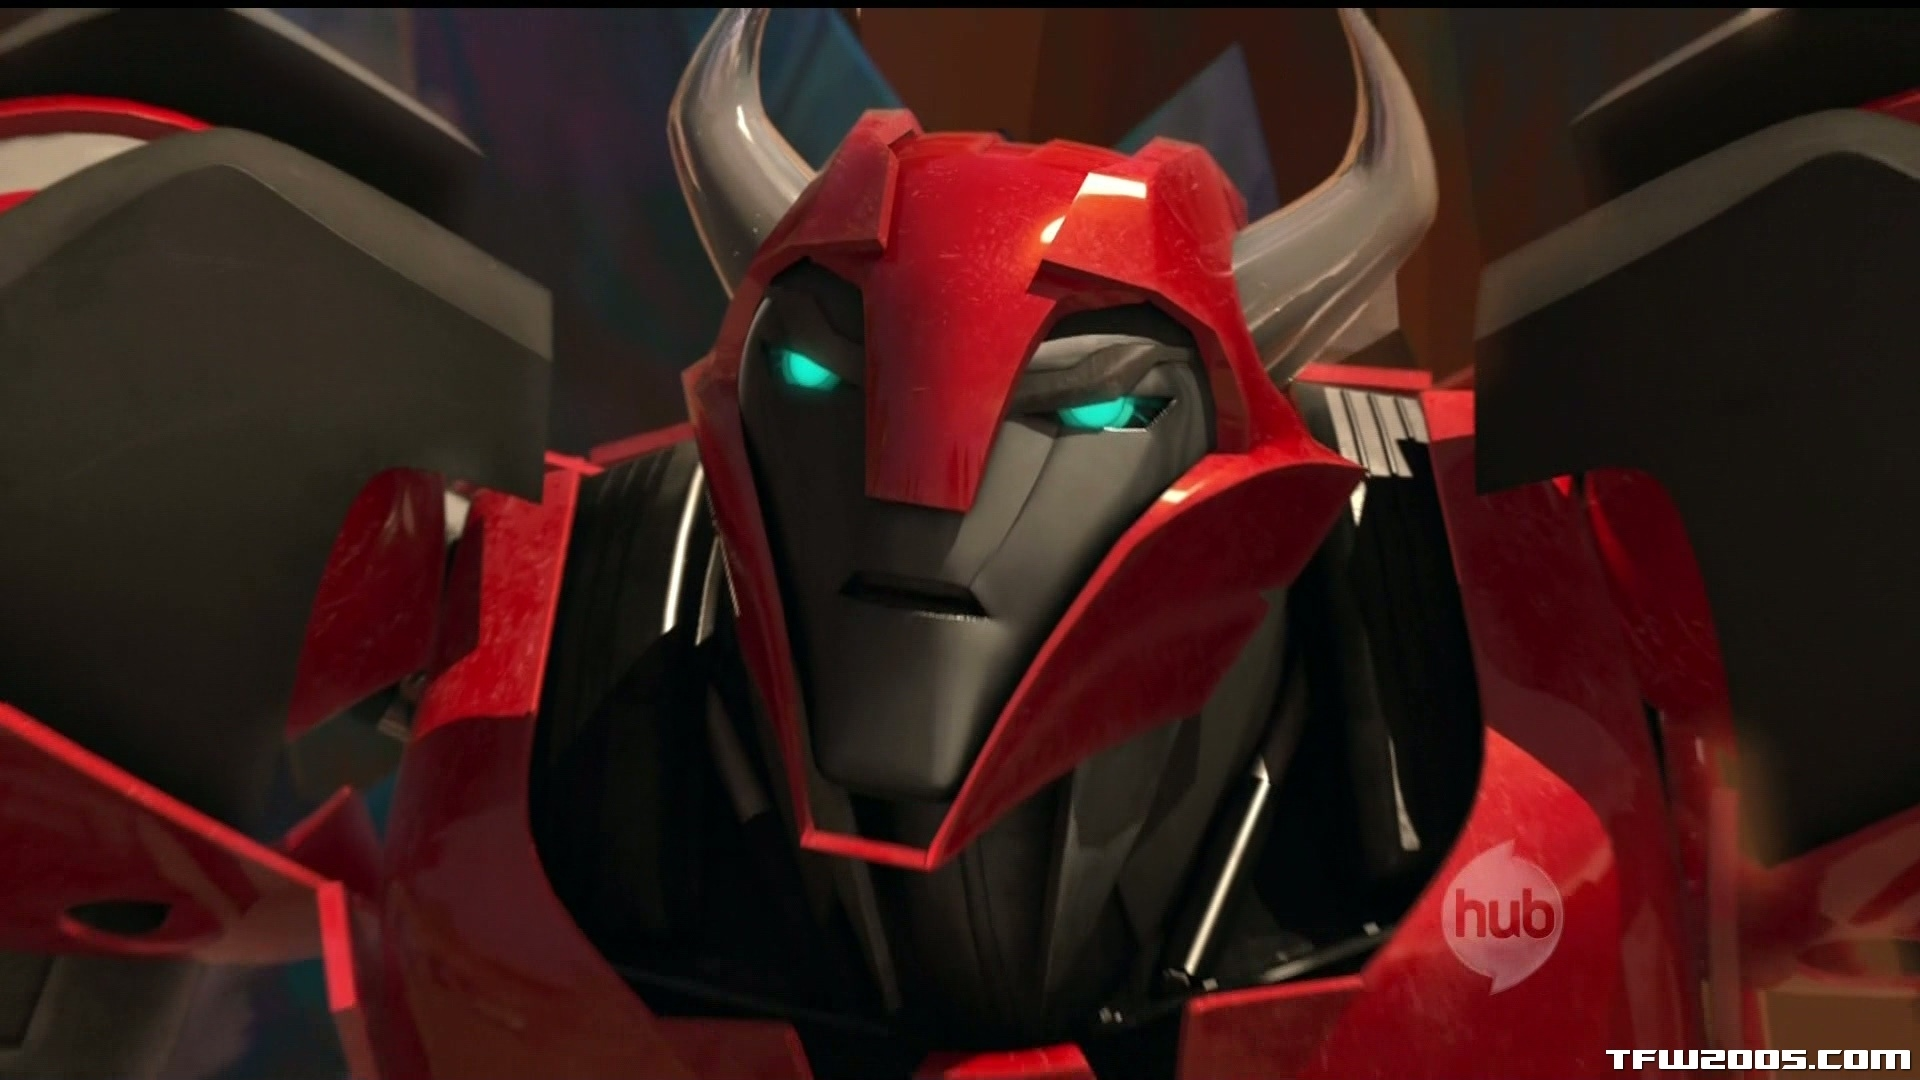 transformers cliffjumper free hd